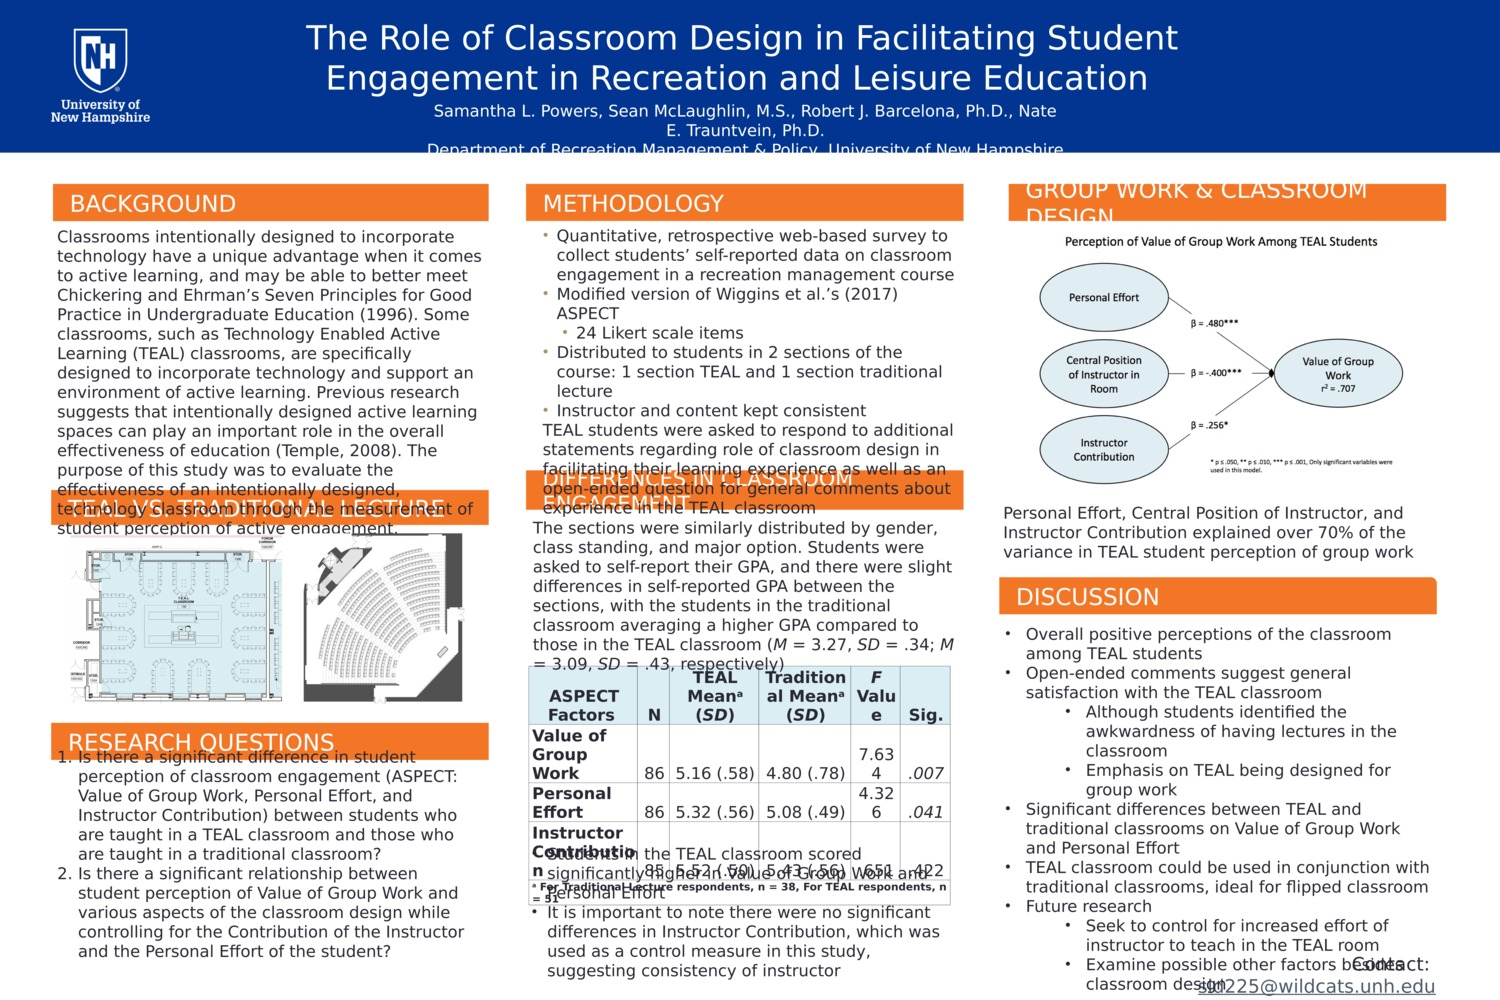 The Role Of Classroom Design In Facilitating Student Engagement In Recreation And Leisure Education  by sld225